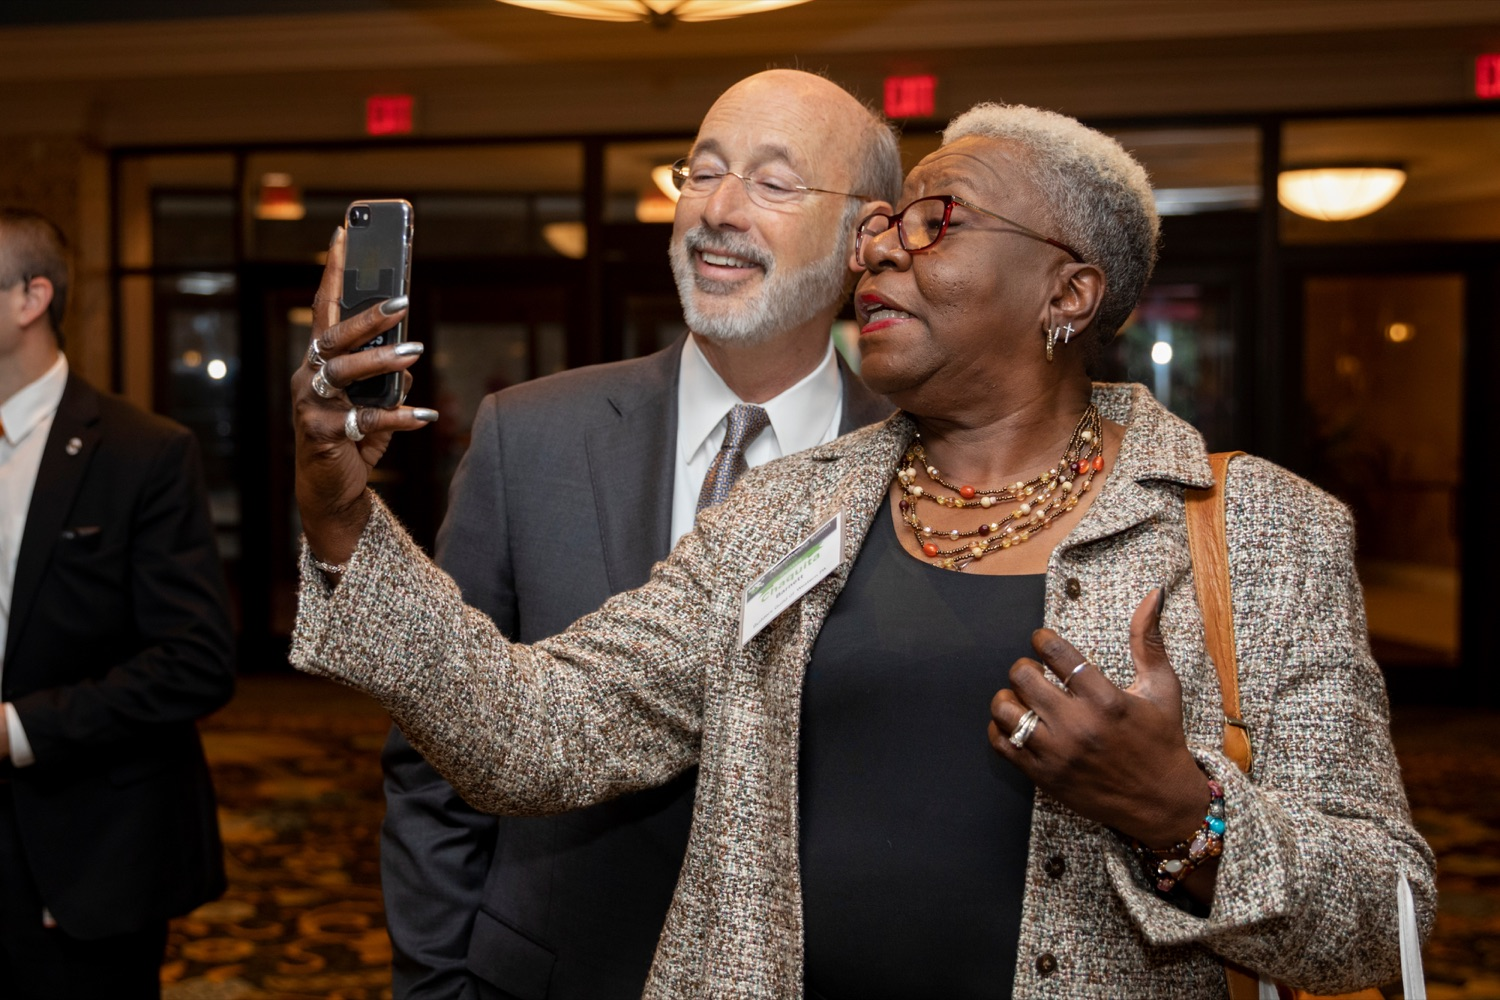 "<a href=""https://filesource.wostreaming.net/commonwealthofpa/photo/17520_LandI_Apprenticeships_NK_005.JPG"" target=""_blank"">⇣ Download Photo<br></a>Pennsylvania Governor Tom Wolf takes a selfie with Chaquita Barnett, of Builders Guild of Western Pennsylvania, during the 2019 Pennsylvania Apprenticeship Summit at Hershey Lodge on Thursday, October 31, 2019."